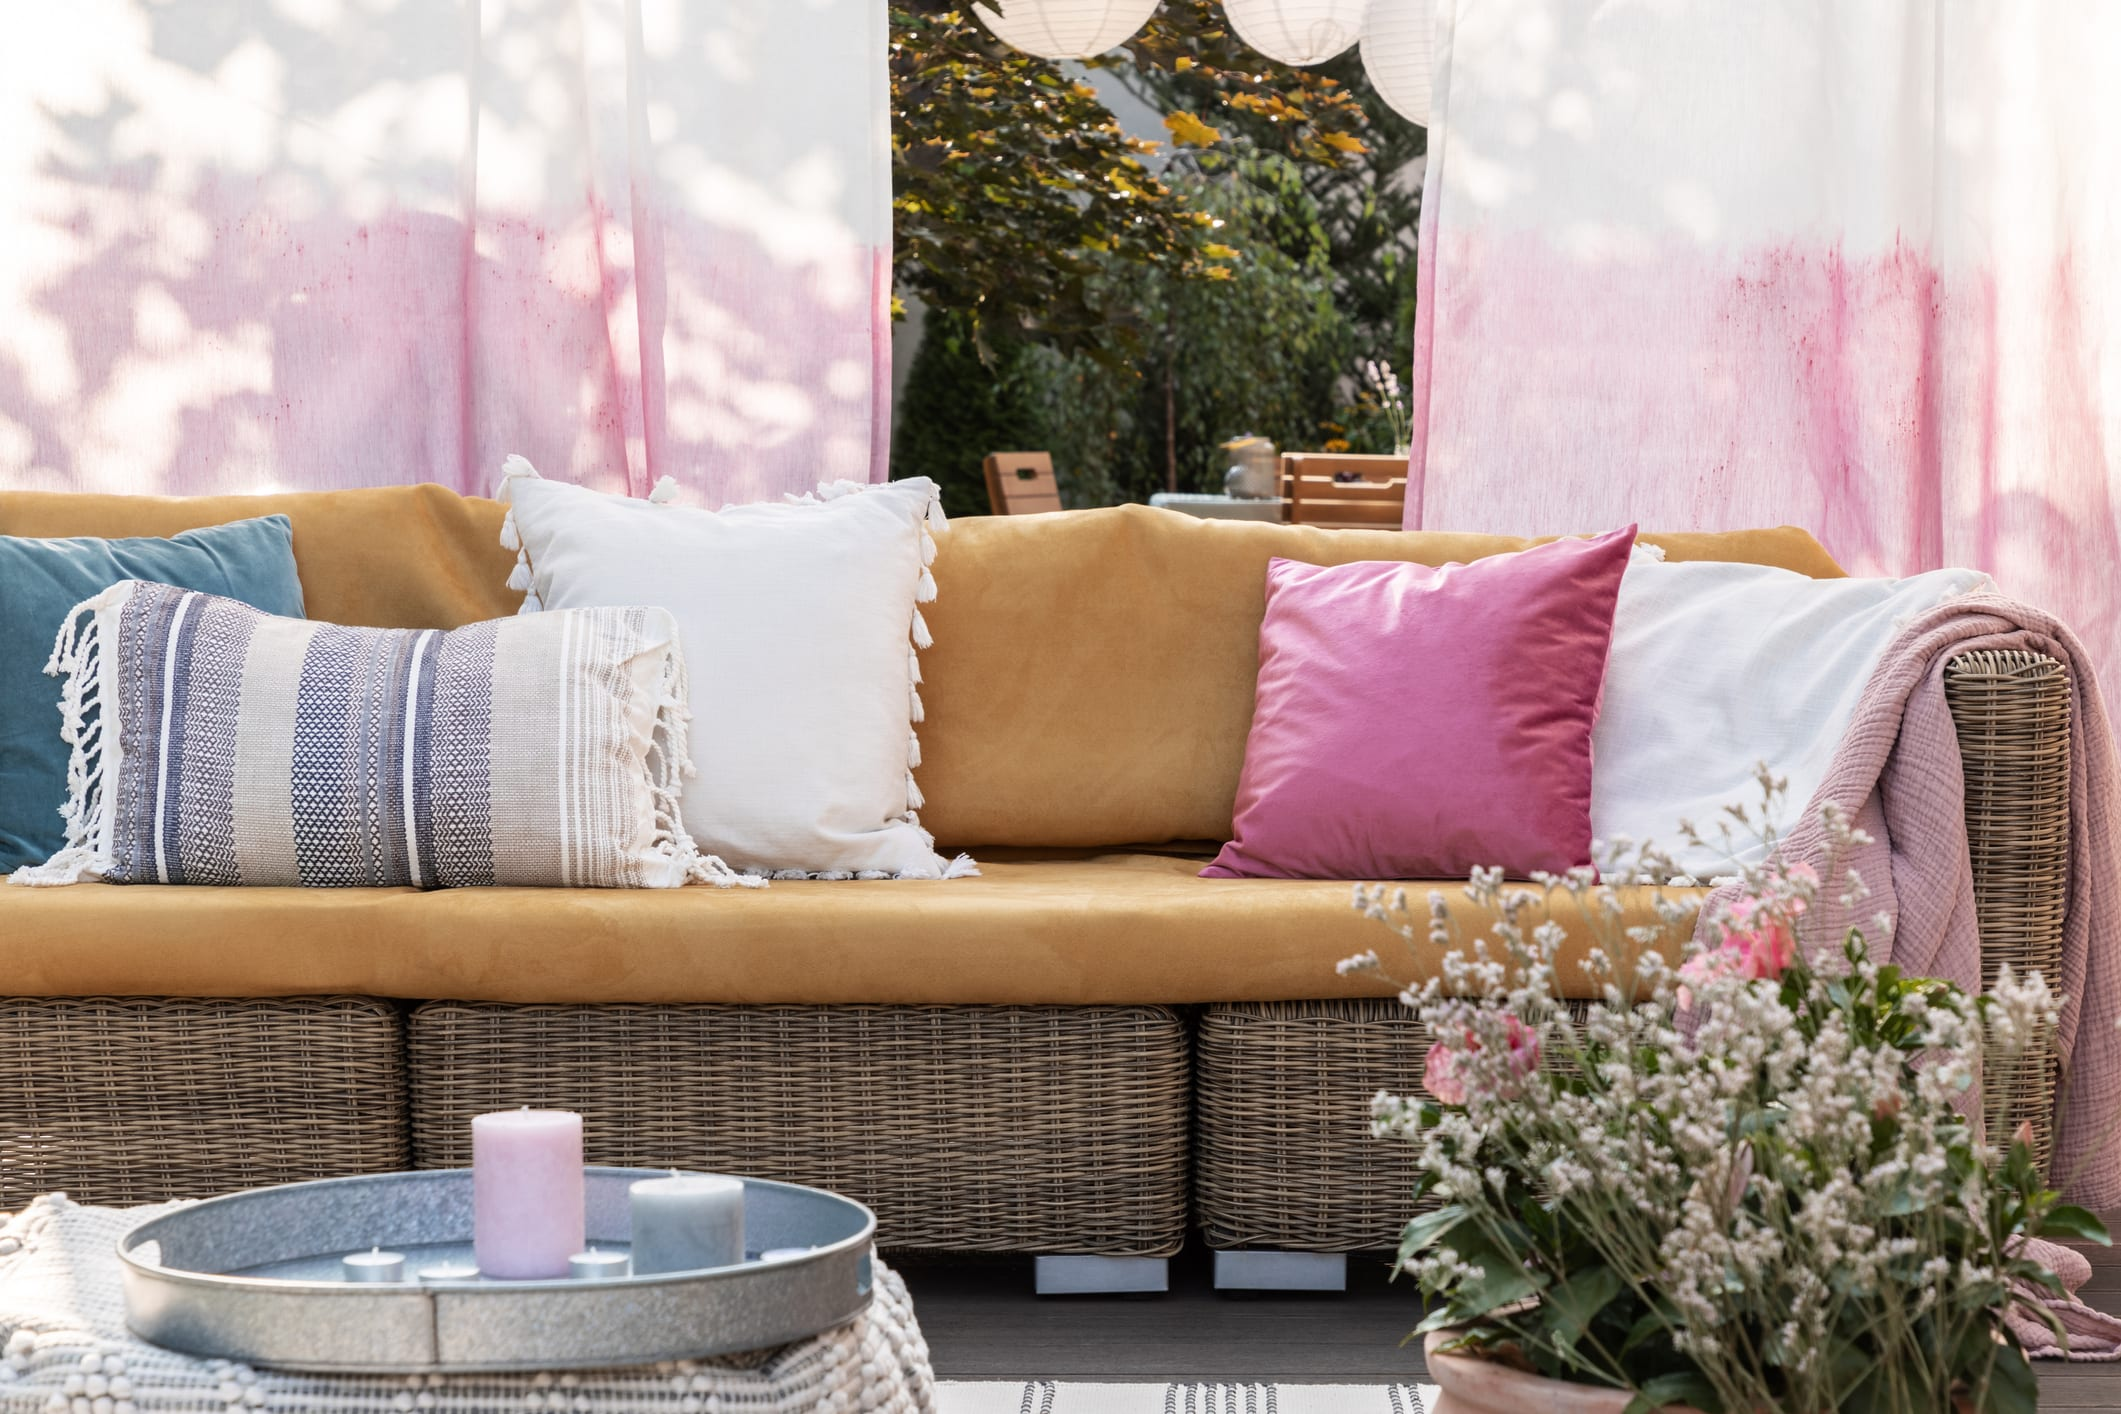 Usher in Warm Weather with Pops of Color